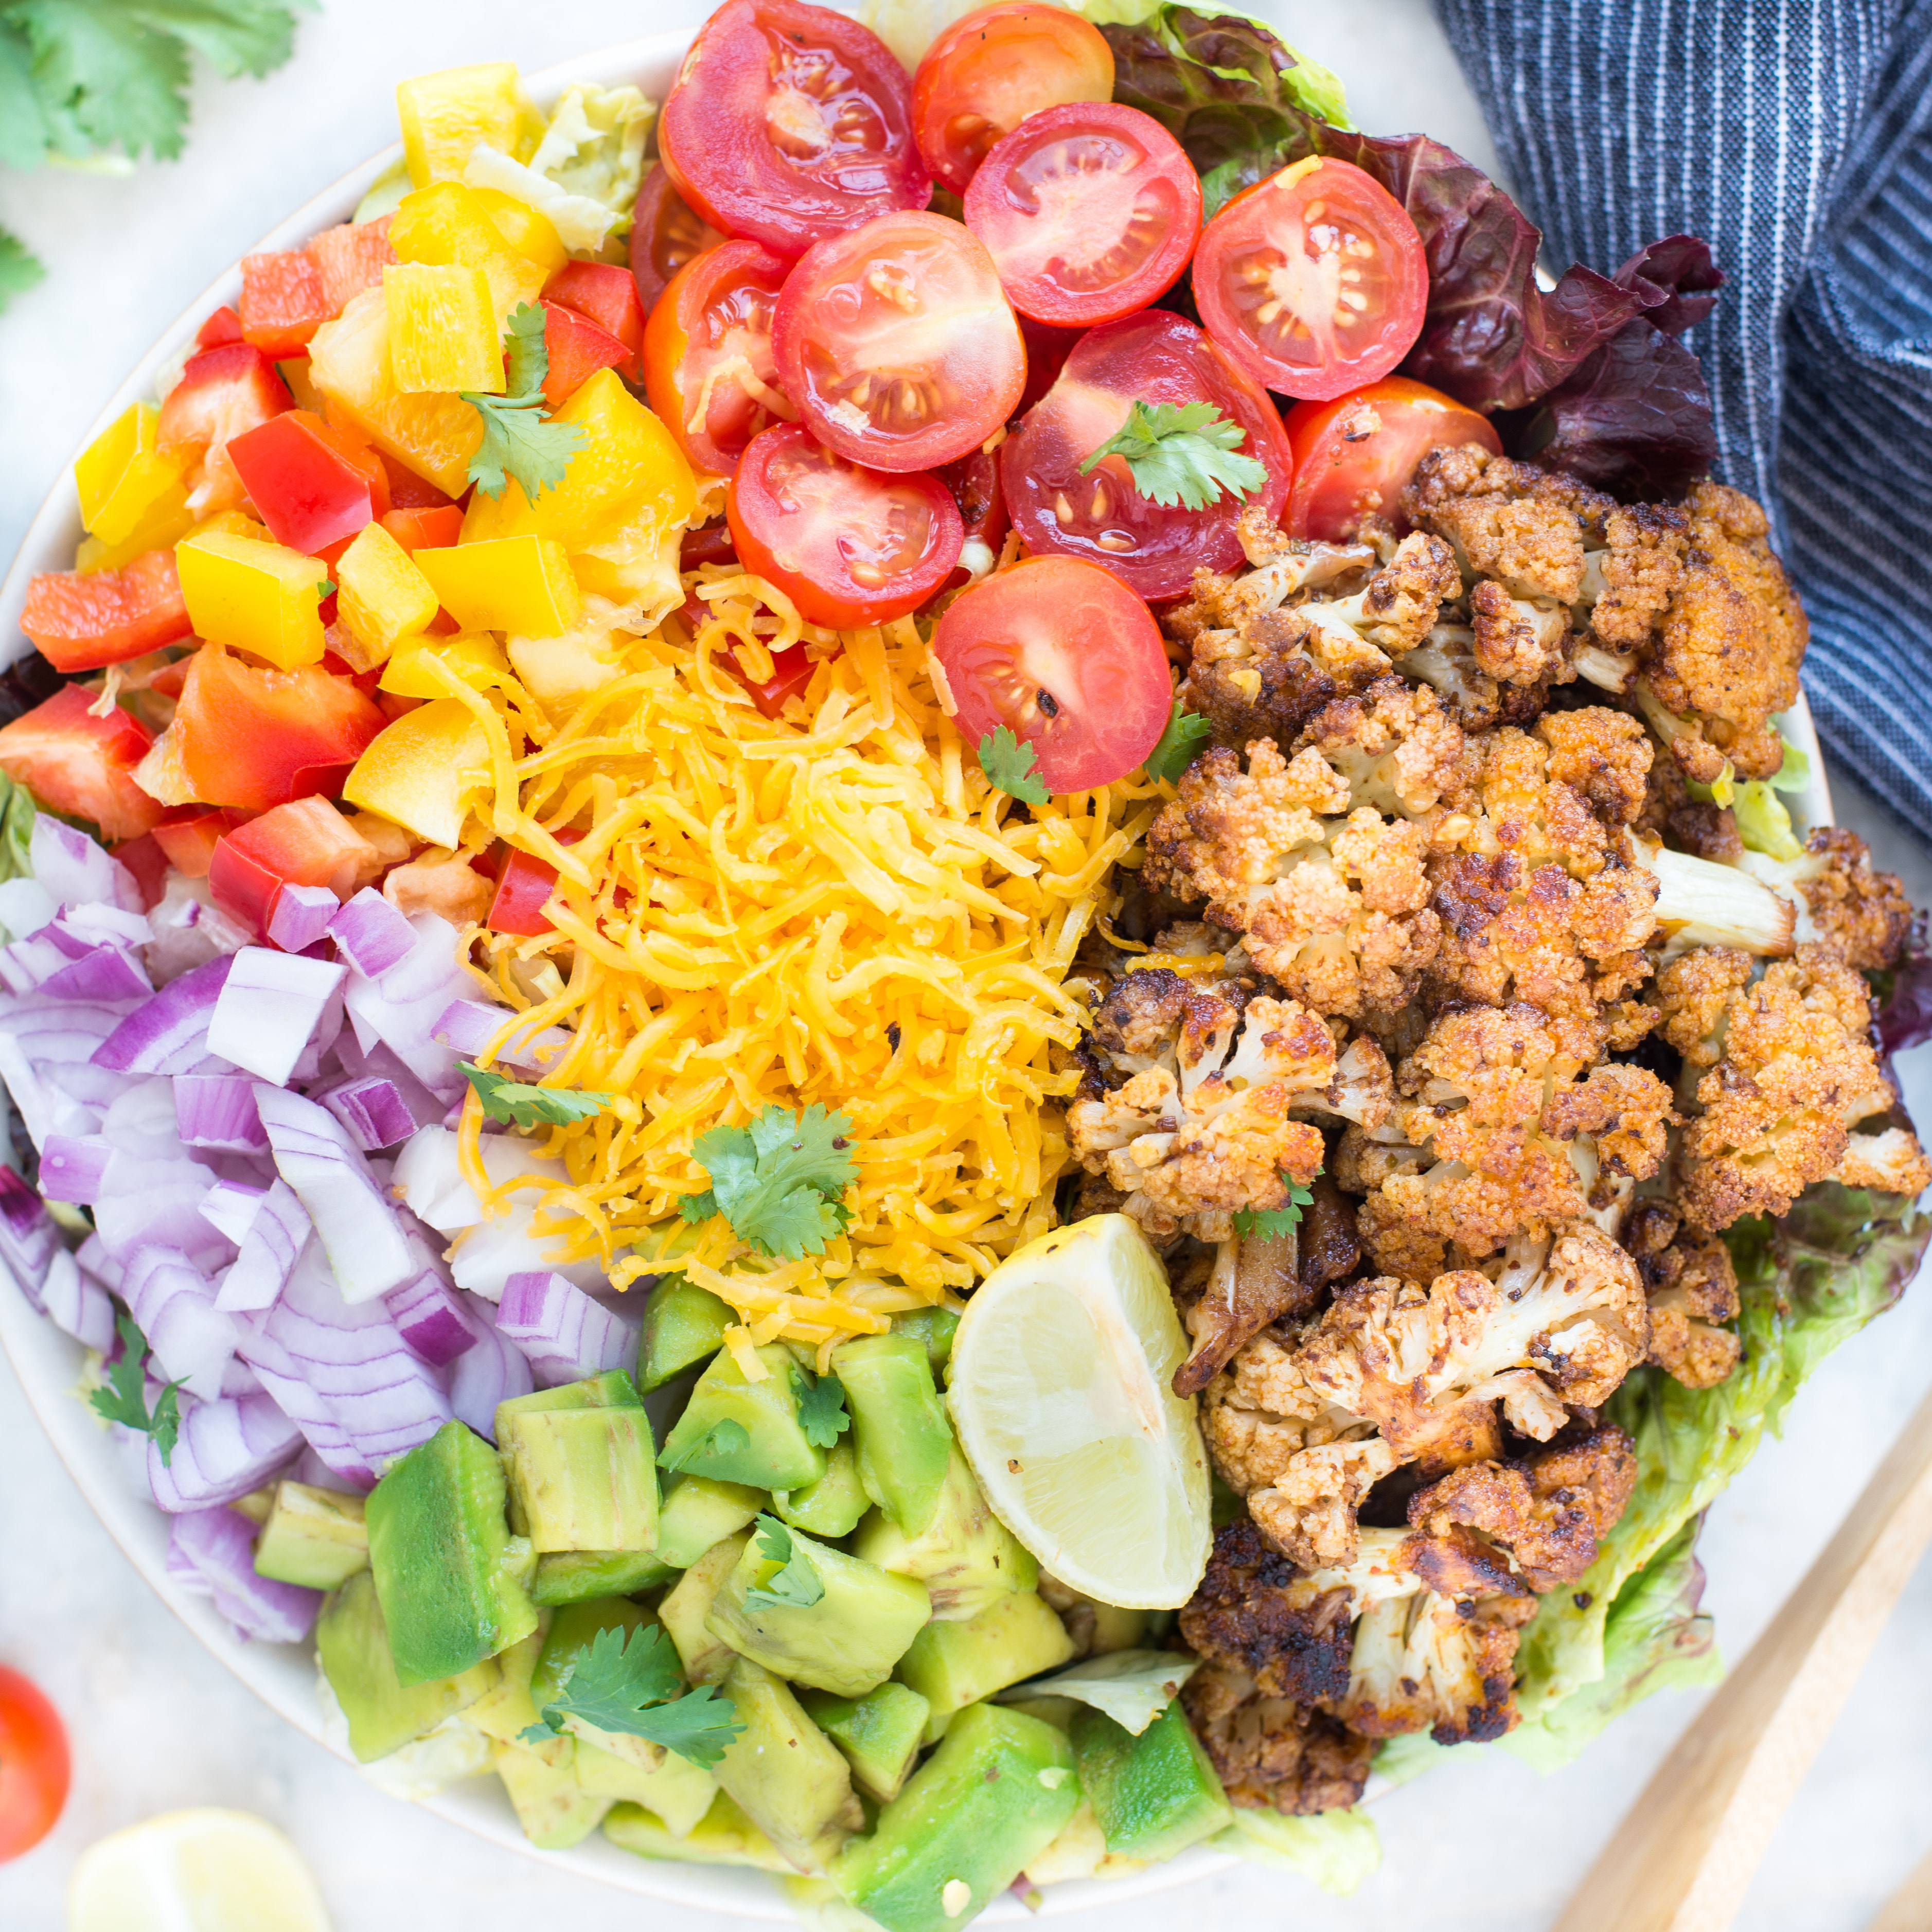 Healthy Taco Salad with Cauliflower is your answer for a low carb taco salad recipe. It is easy and comes together in 20 minutes. Perfect for a potluck.